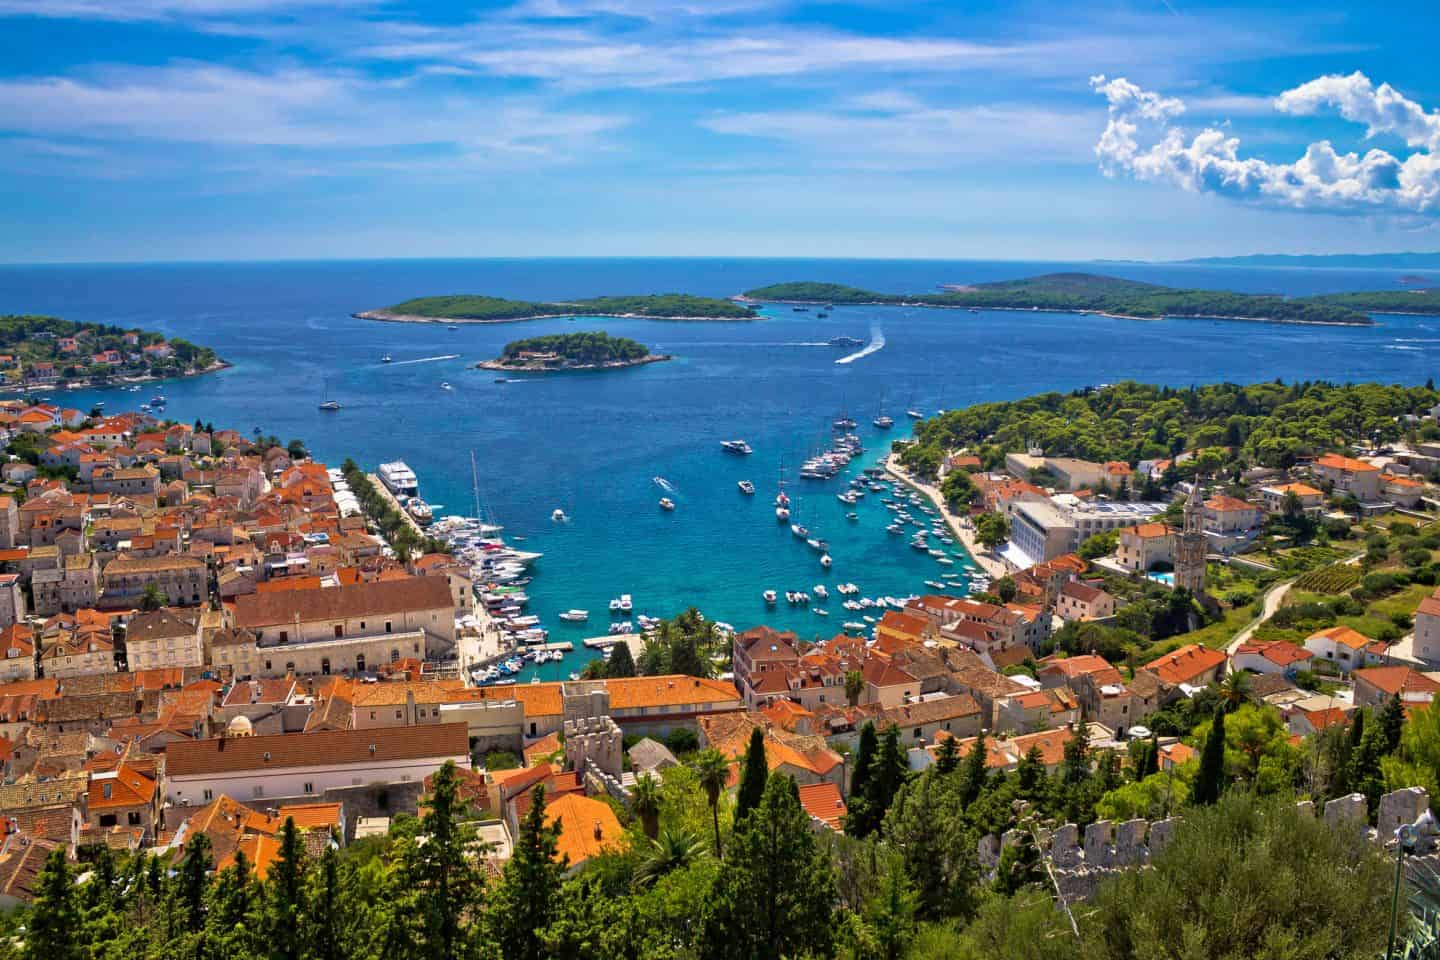 Island of Hvar bay aerial view, Dalmatia, Croatia